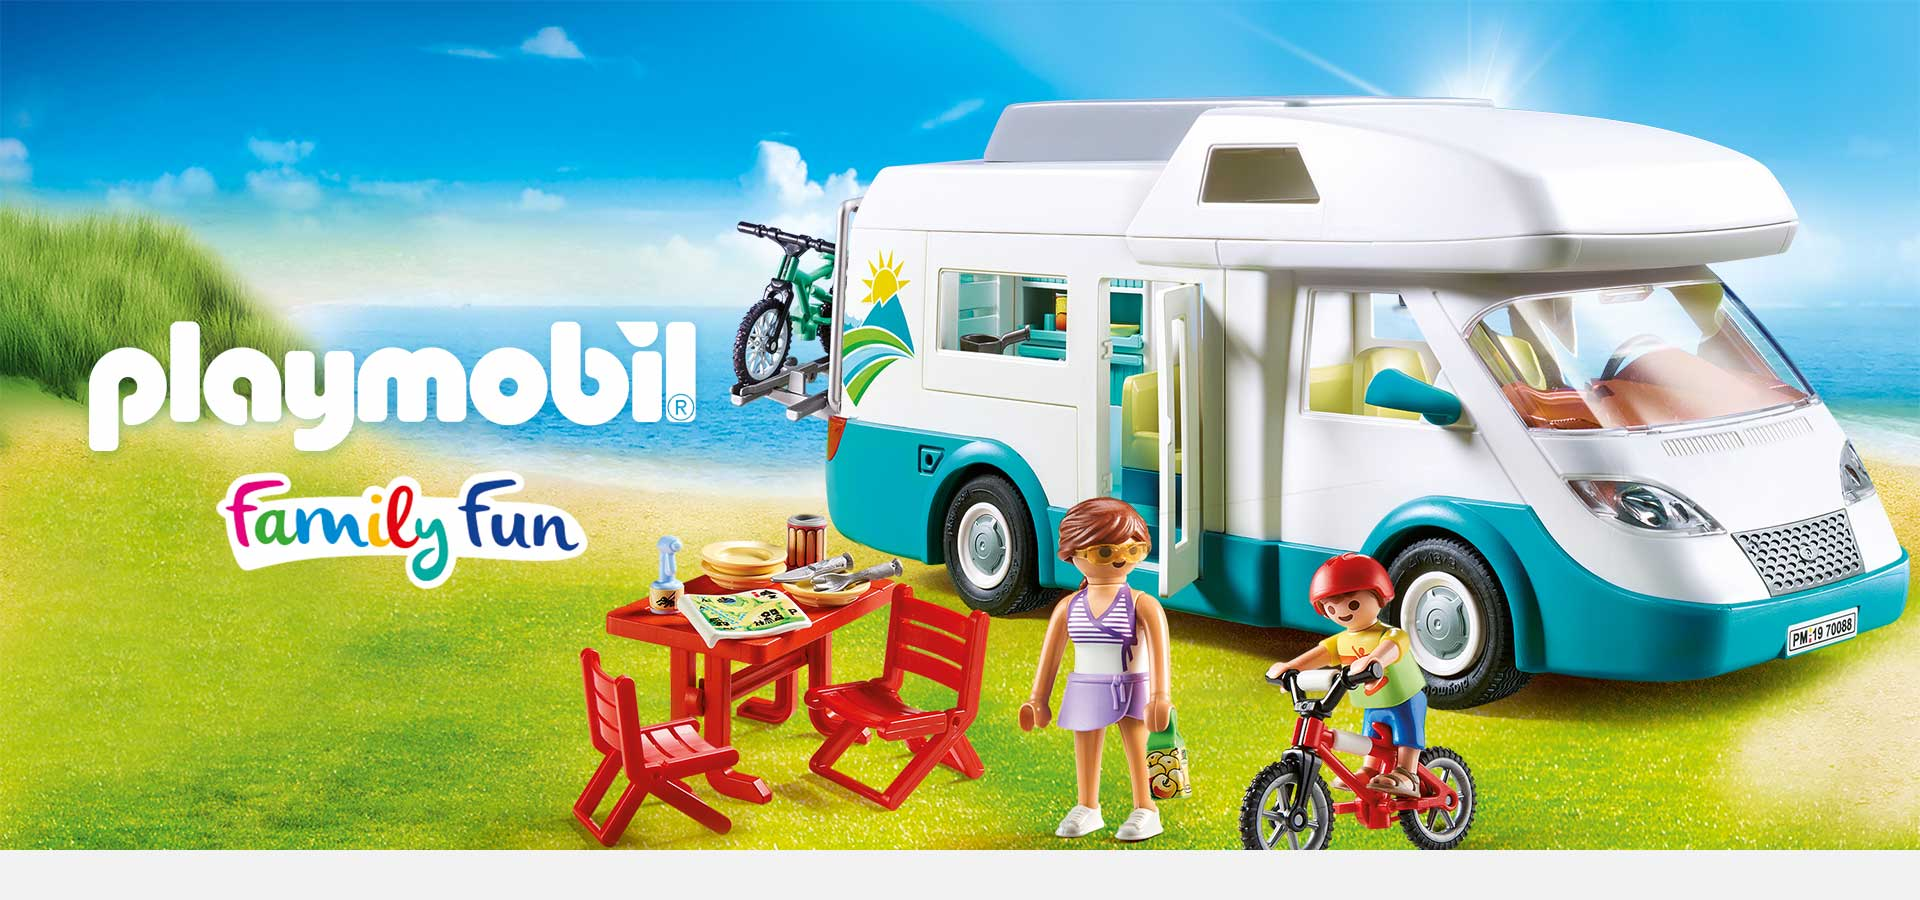 Playmobil Family Fun Banner.jpg